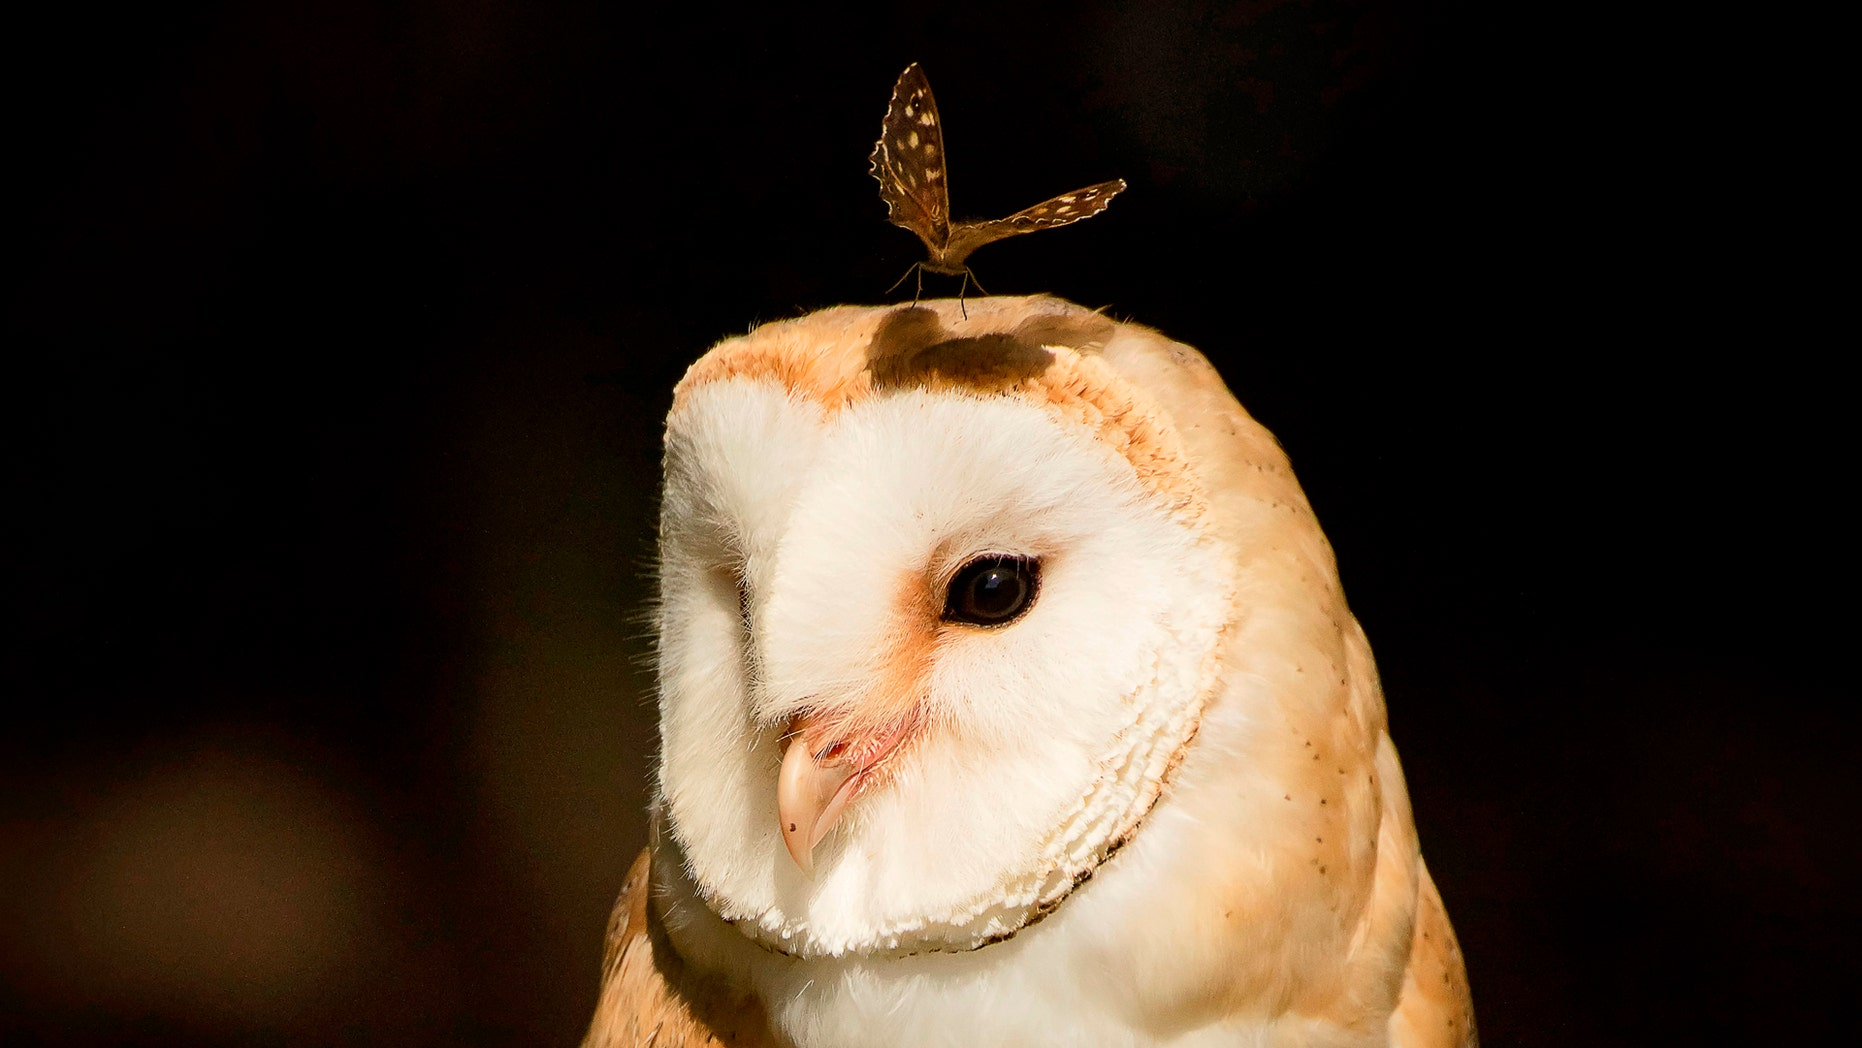 Stunning photo captures the butterfly landing on a barn owl's head